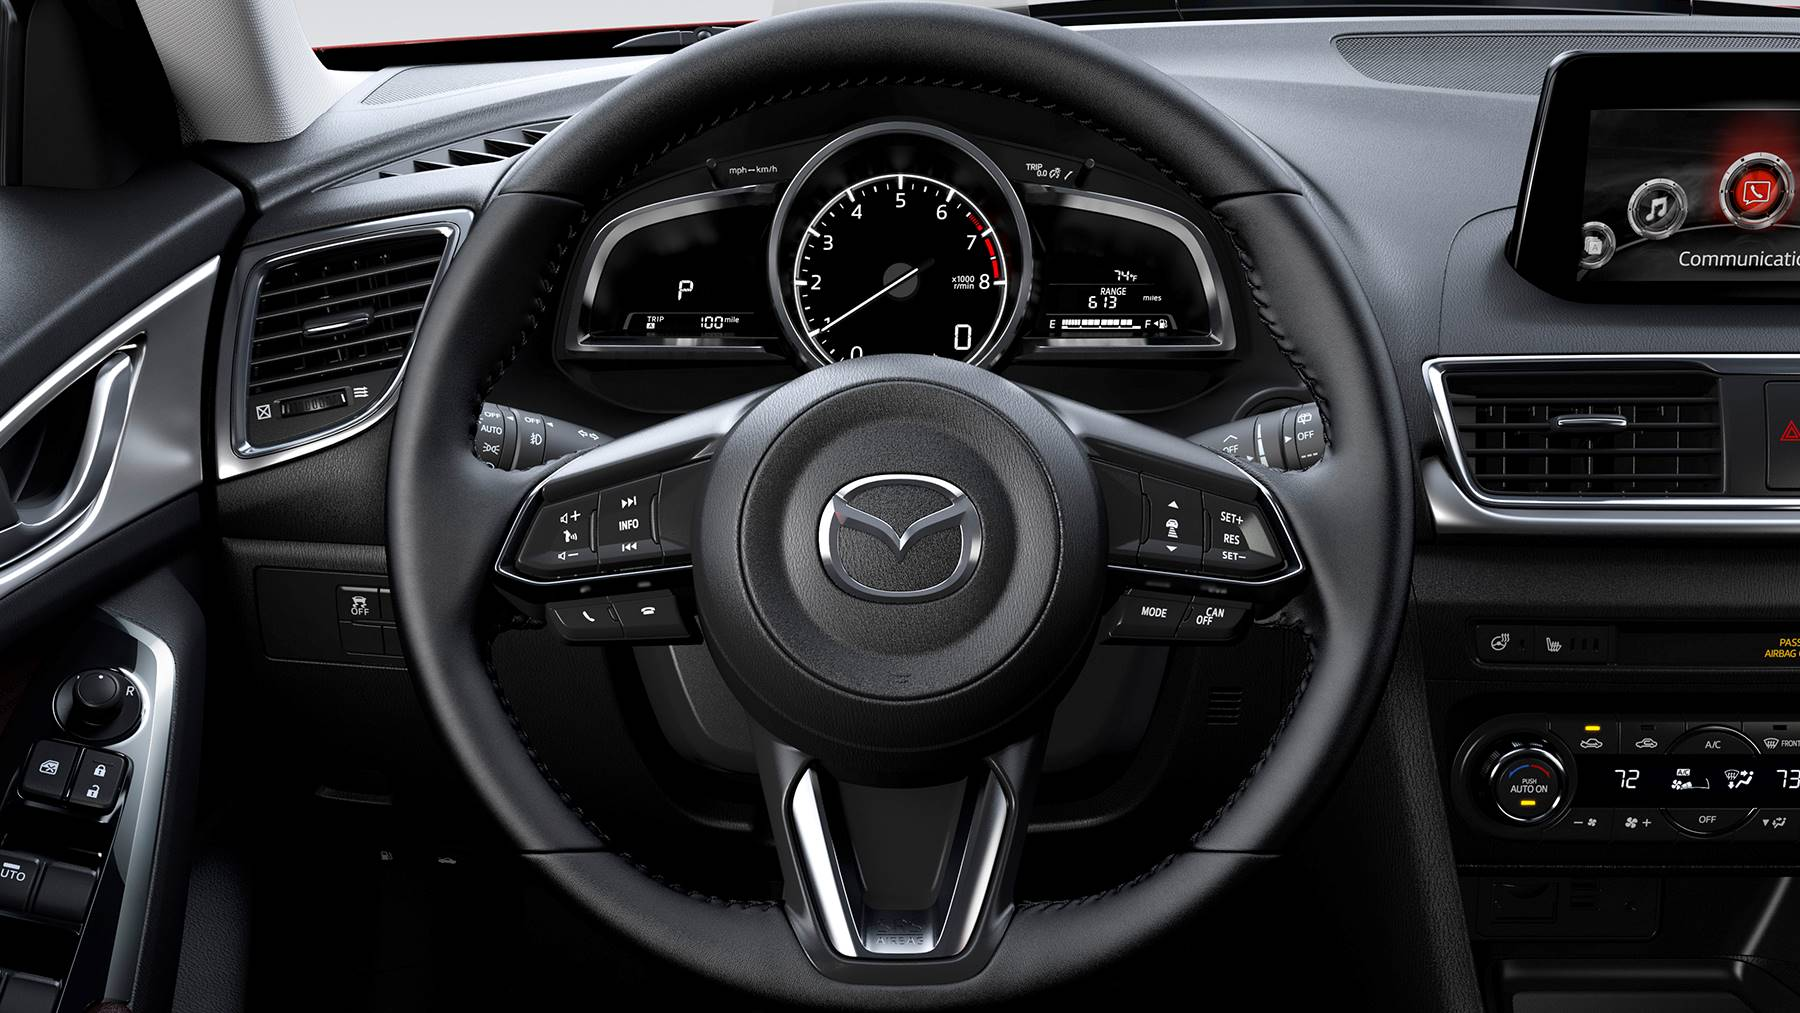 Steering Wheel of the 2018 Mazda3